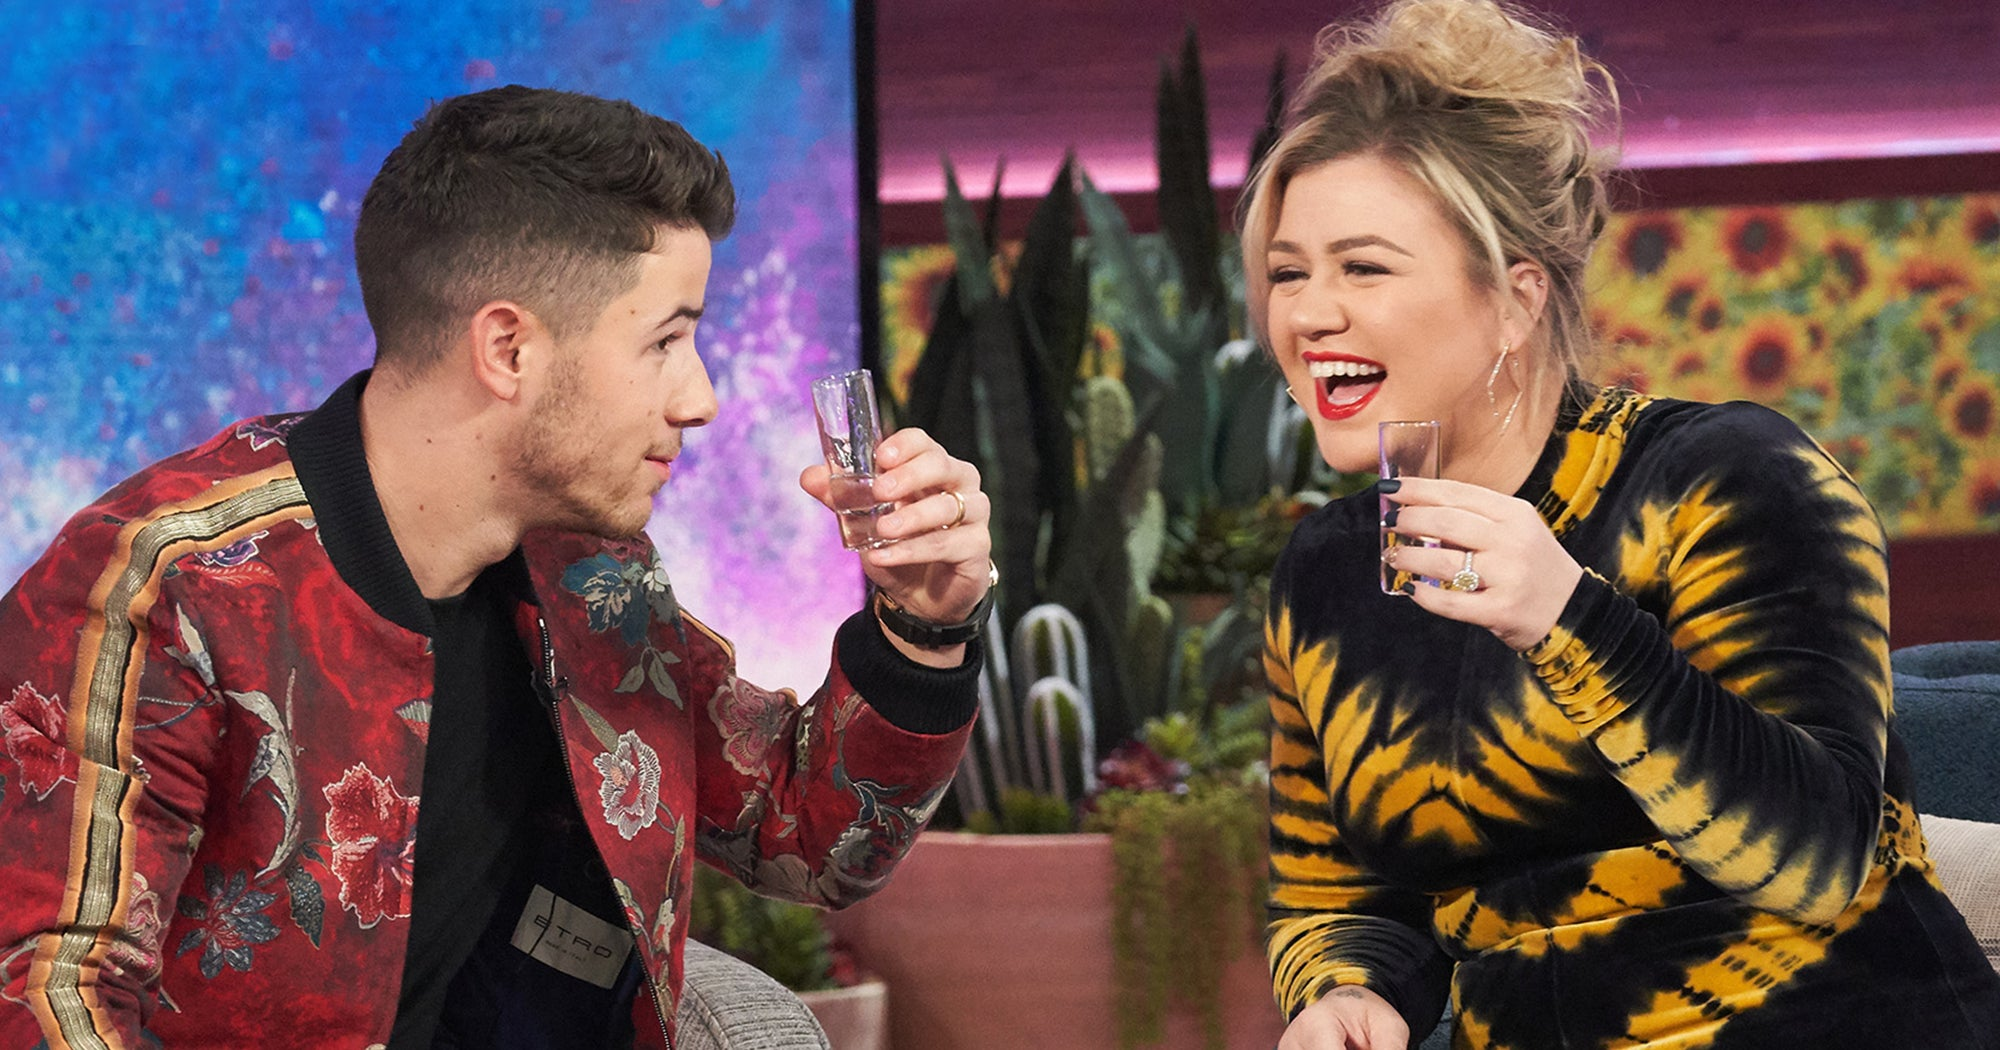 Kelly Clarkson Who-ed Nick Jonas To His Face & It Was Wonderful